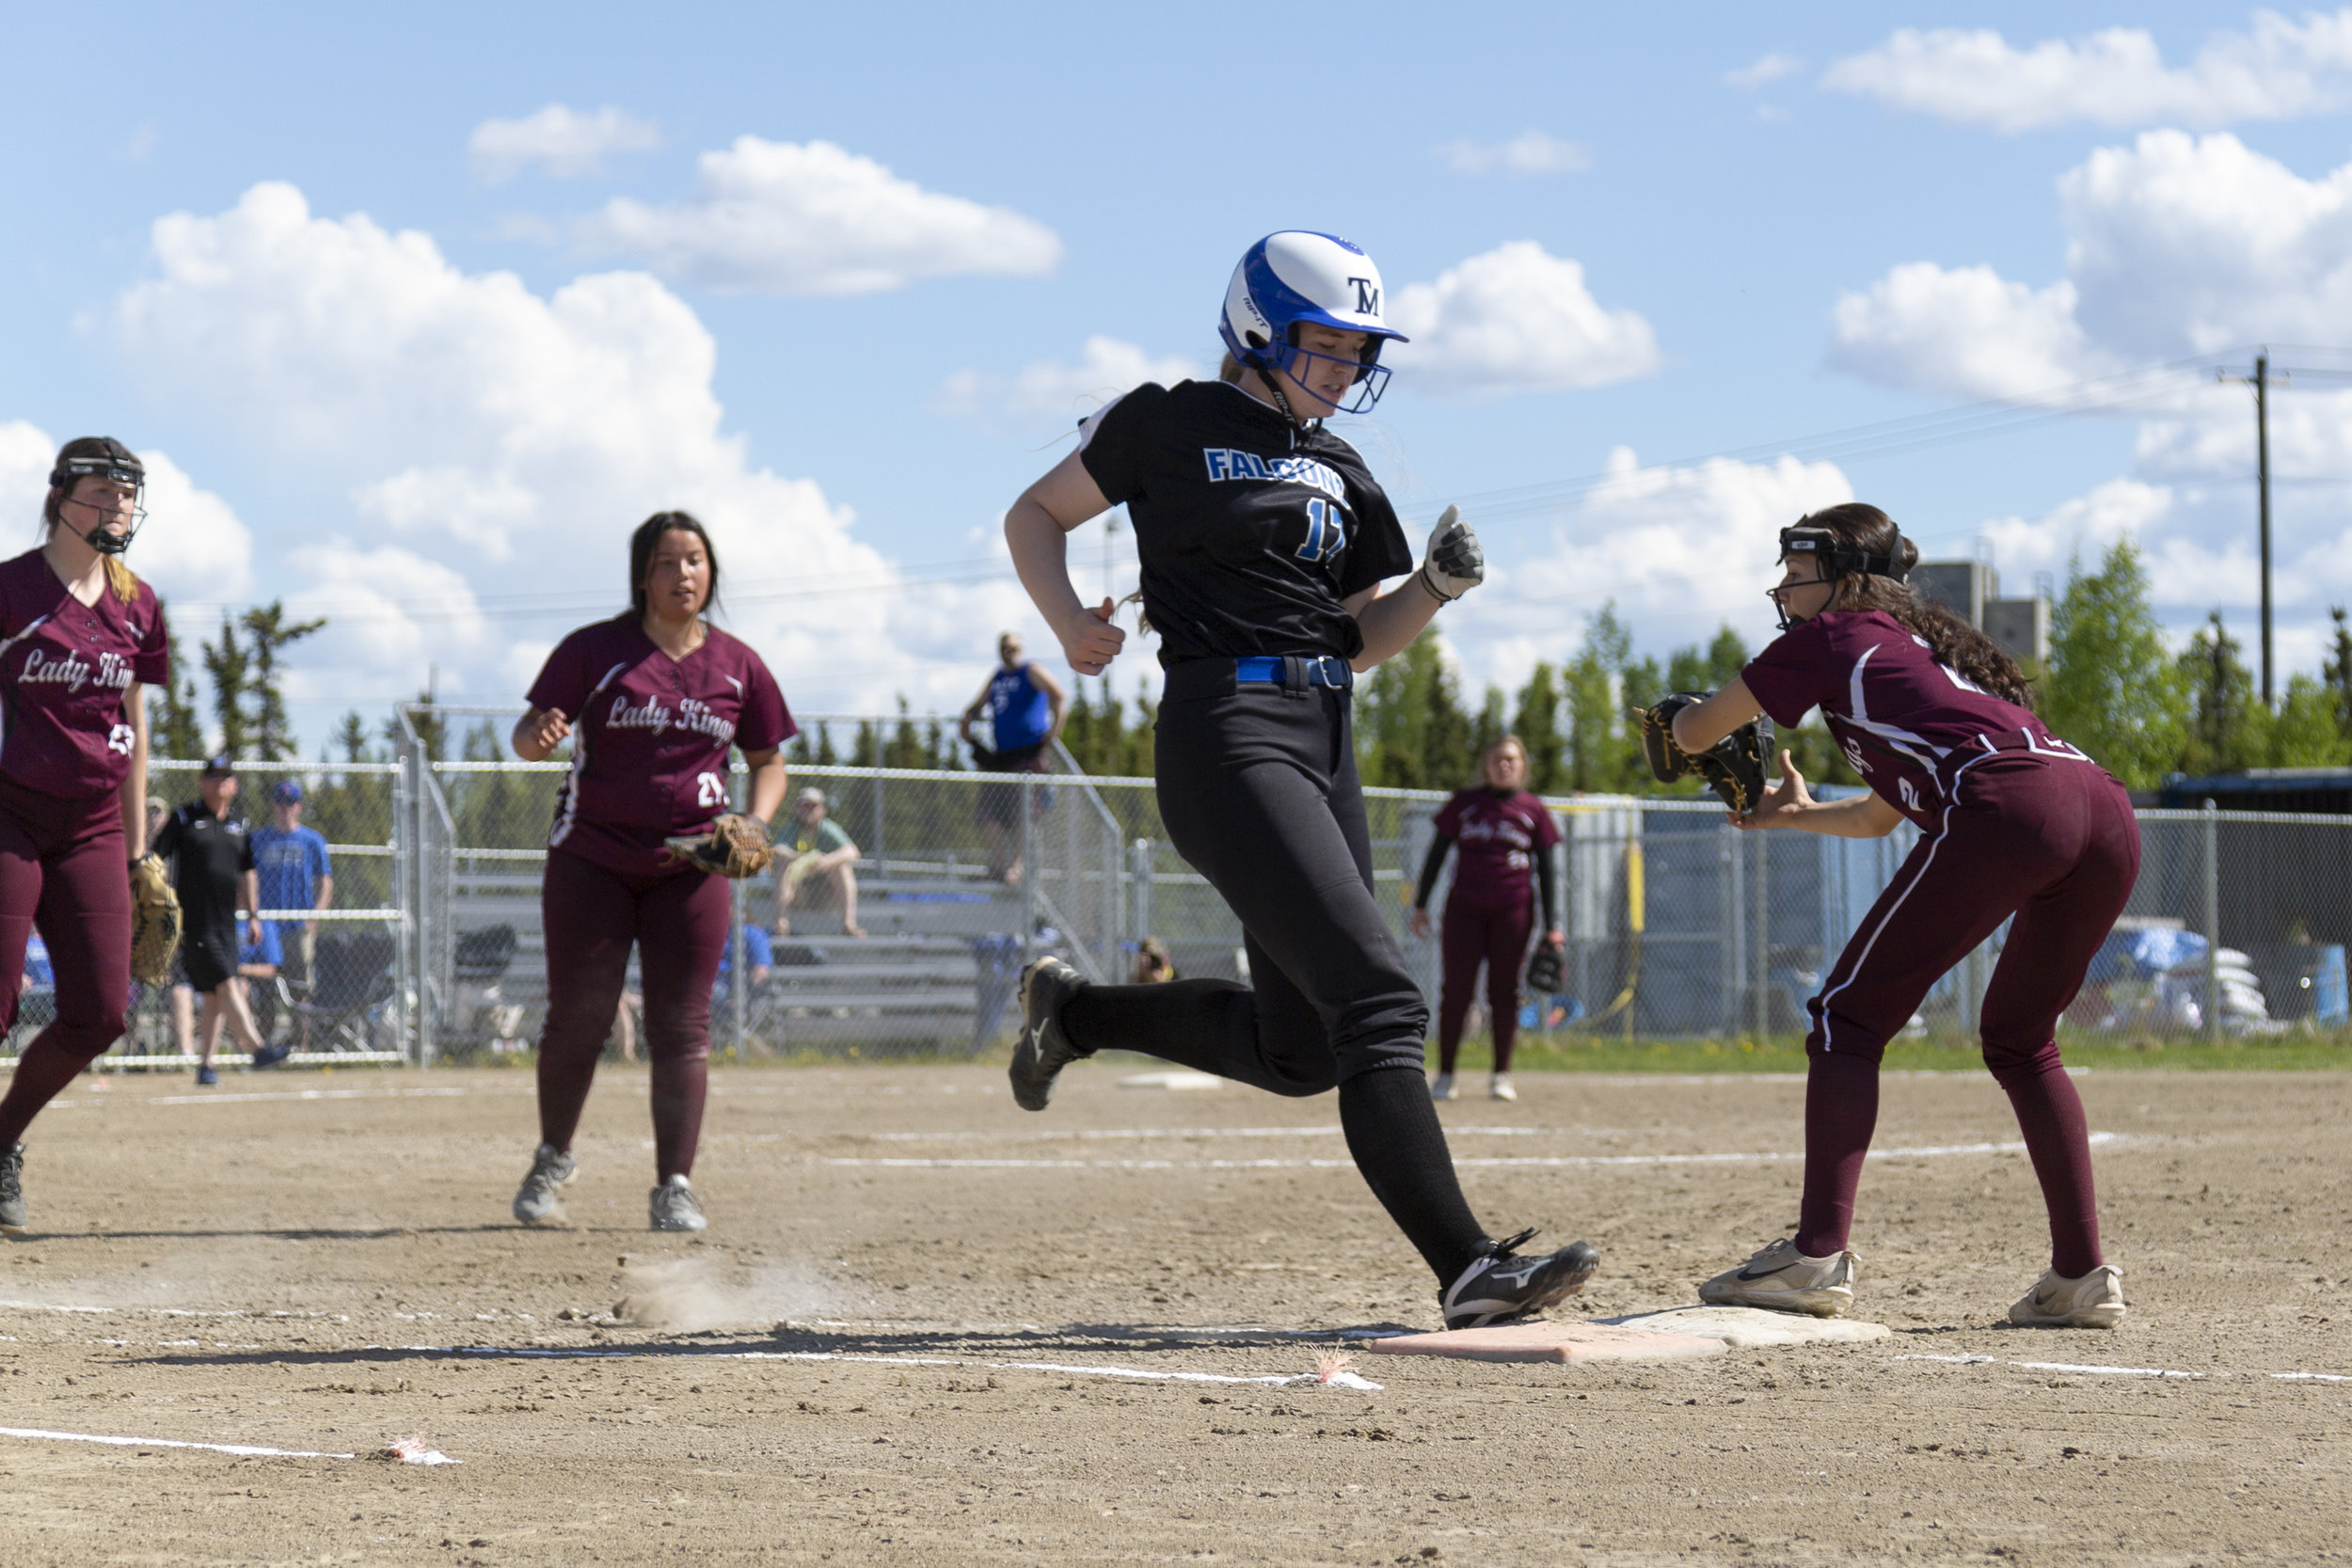 #30 Megan Dallas of Thunder Mountain High School makes it safely onto first base in the fourth inning of Thunder Mountain vs Ketchikan in the first Championship Game on Saturday, June 2nd in Fairbanks, AK. Sarah Manriquez/Juneau Empire